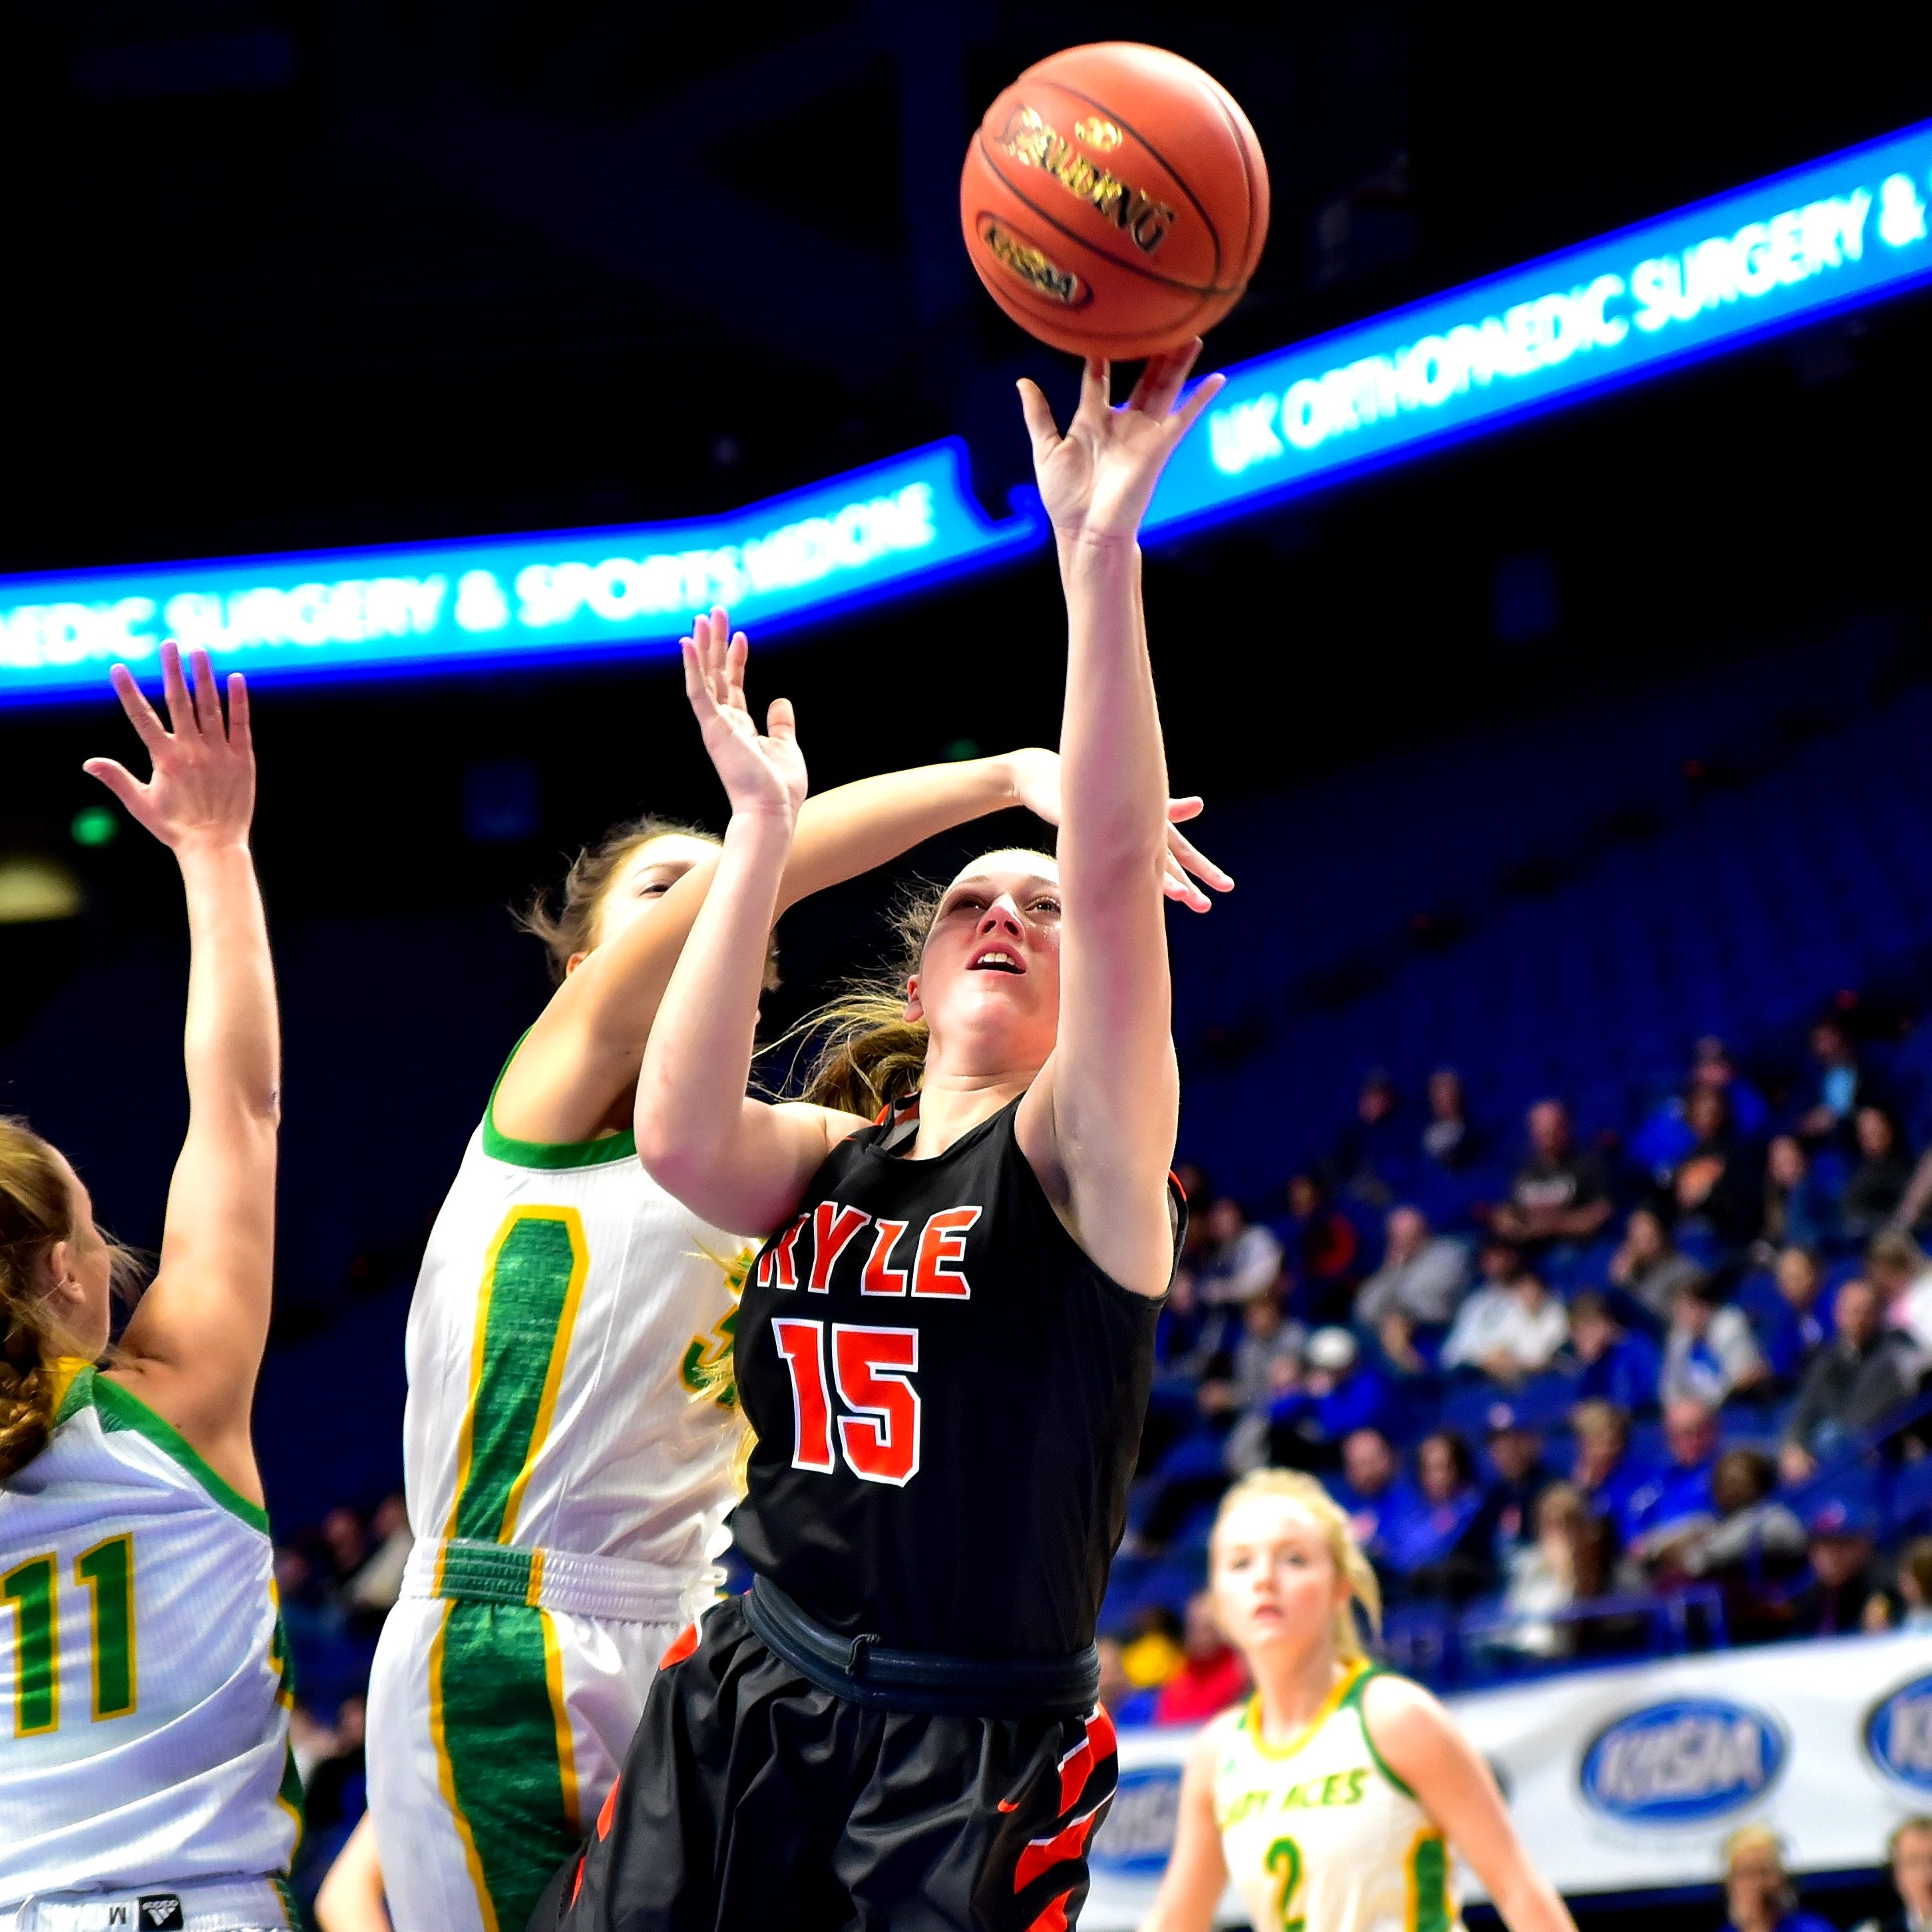 Lauren Schwartz (15) of Ryle powers to the hoop for the Lady Raiders as they top Owensboro Catholic 55-43 to advance to the KHSAA state girls basketball championship game in the KHSAA Girls Sweet 16 at Rupp Arena in Lexington, KY, March 16, 2019.